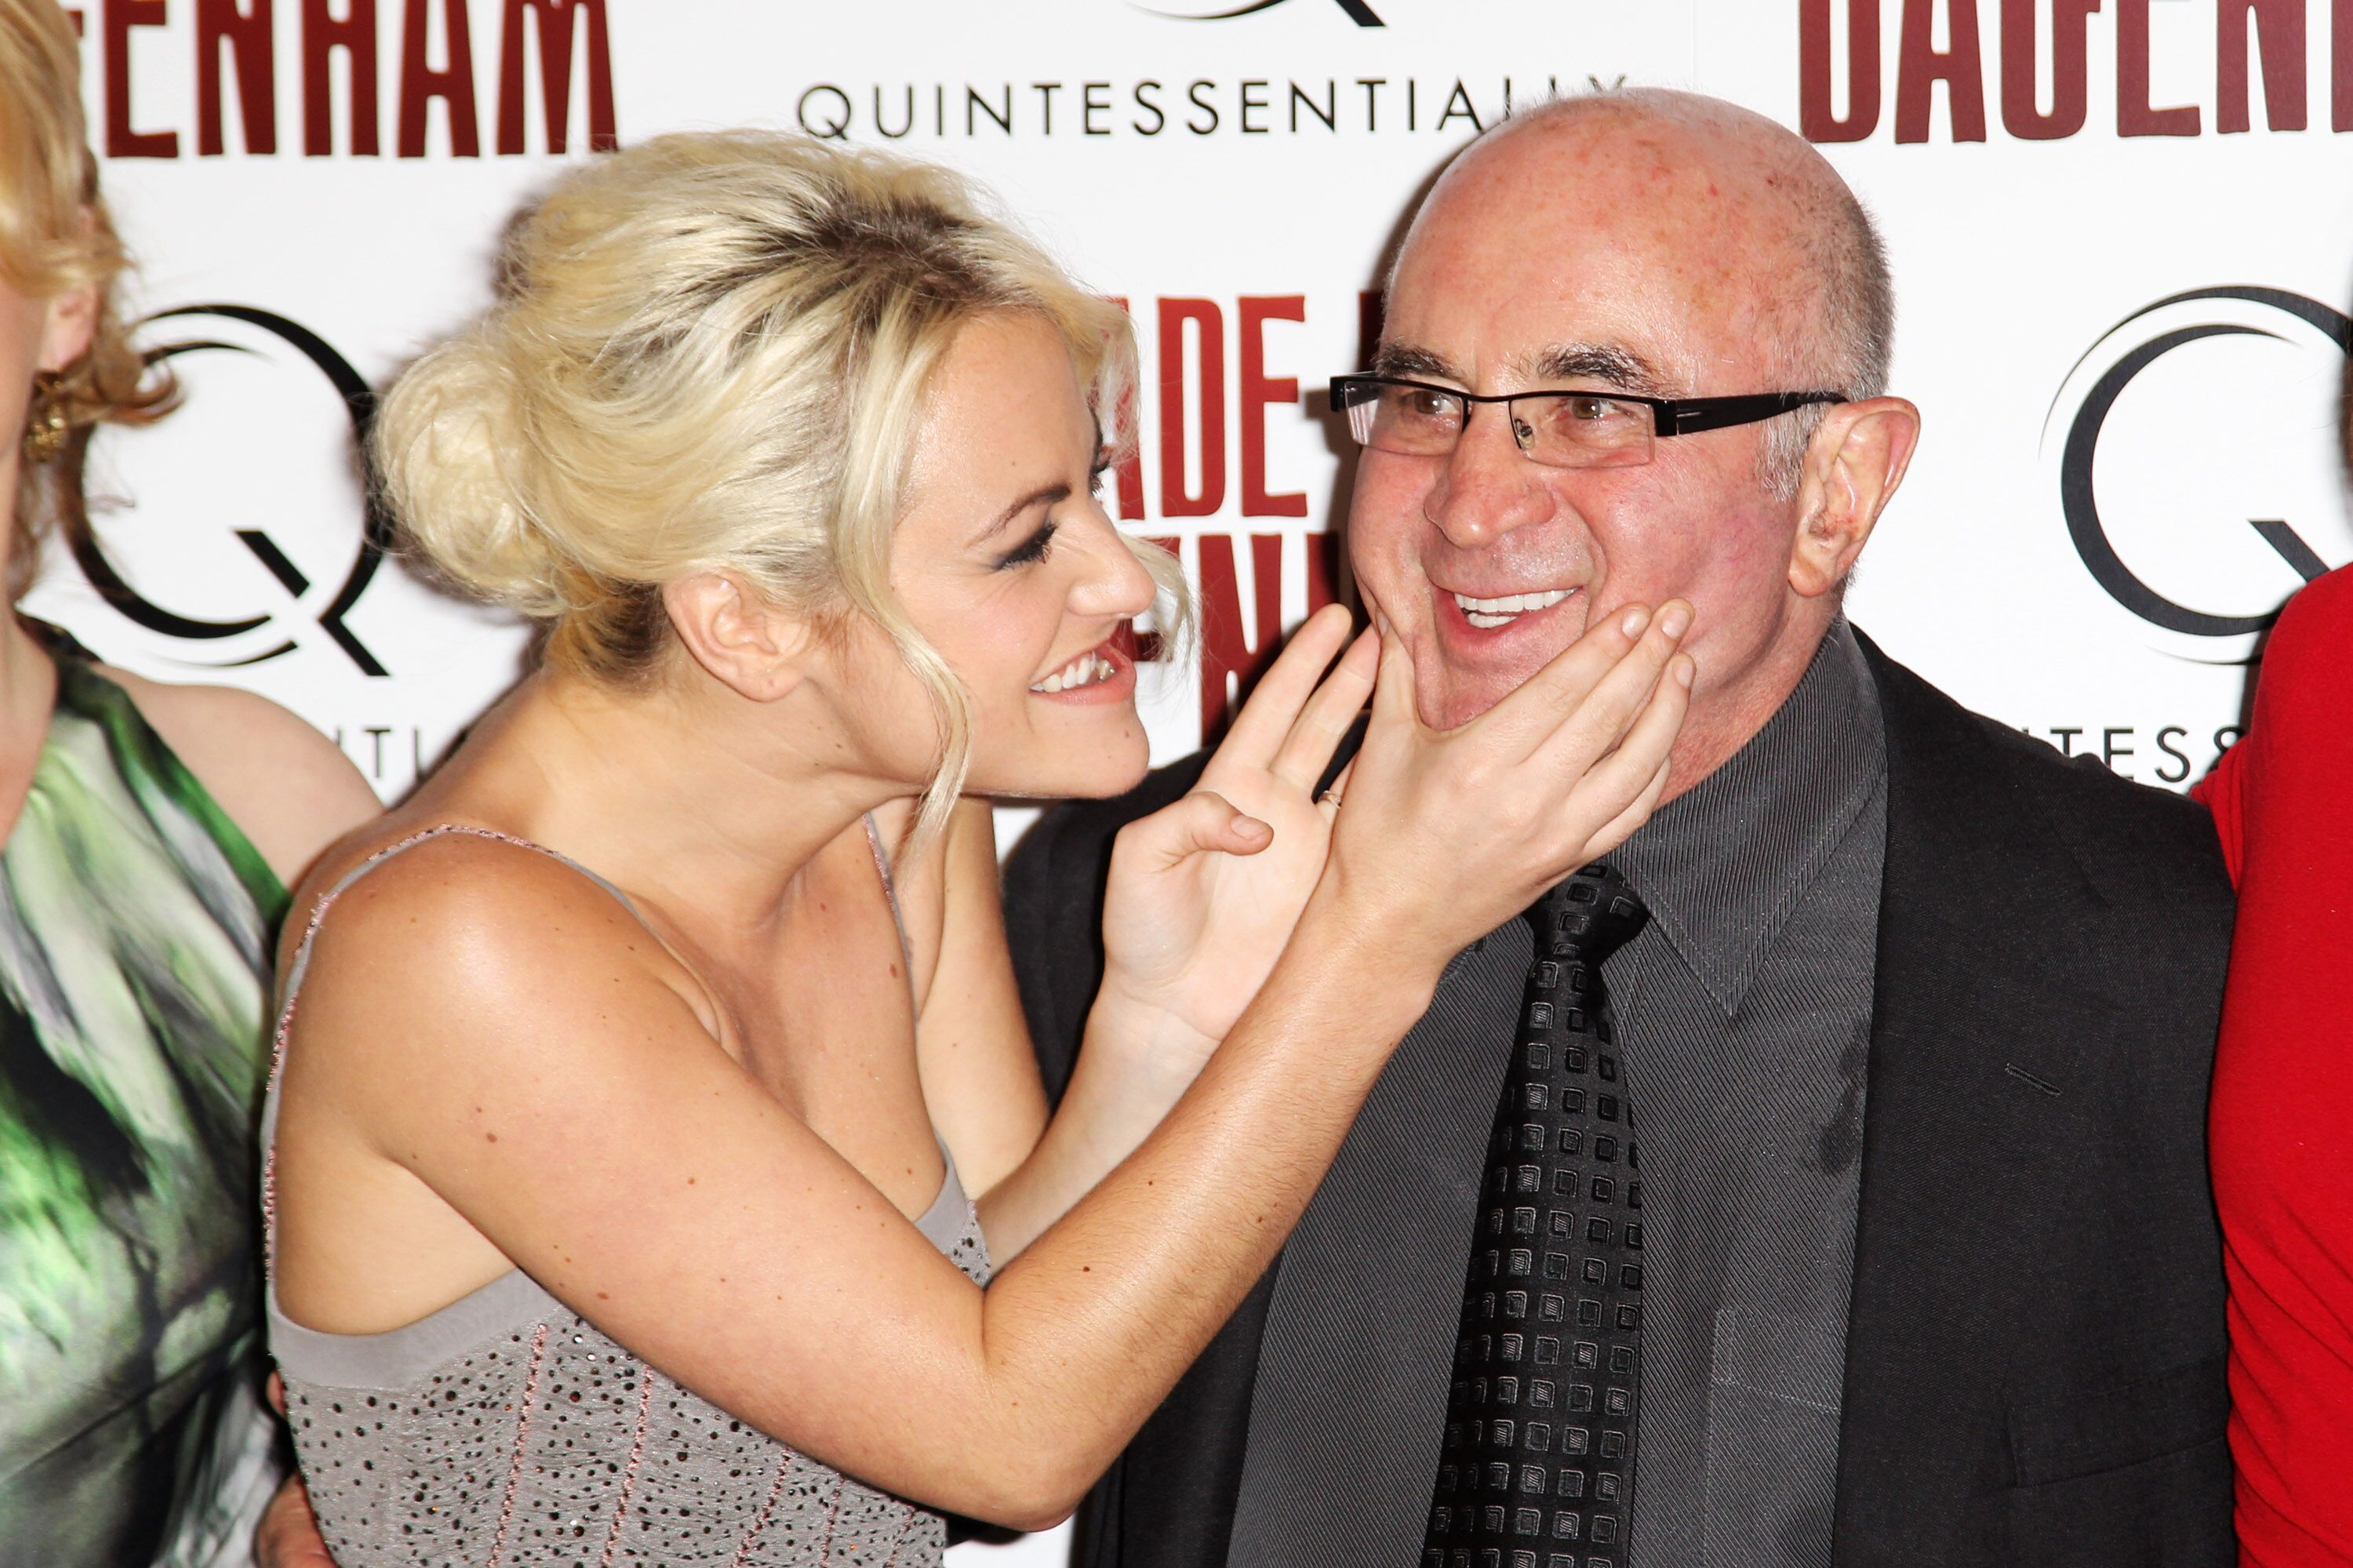 Jaime Winstone and Bob Hoskins attend the world premiere of Made In Dagenham held at The Odeon Leicester Square  | Getty Images